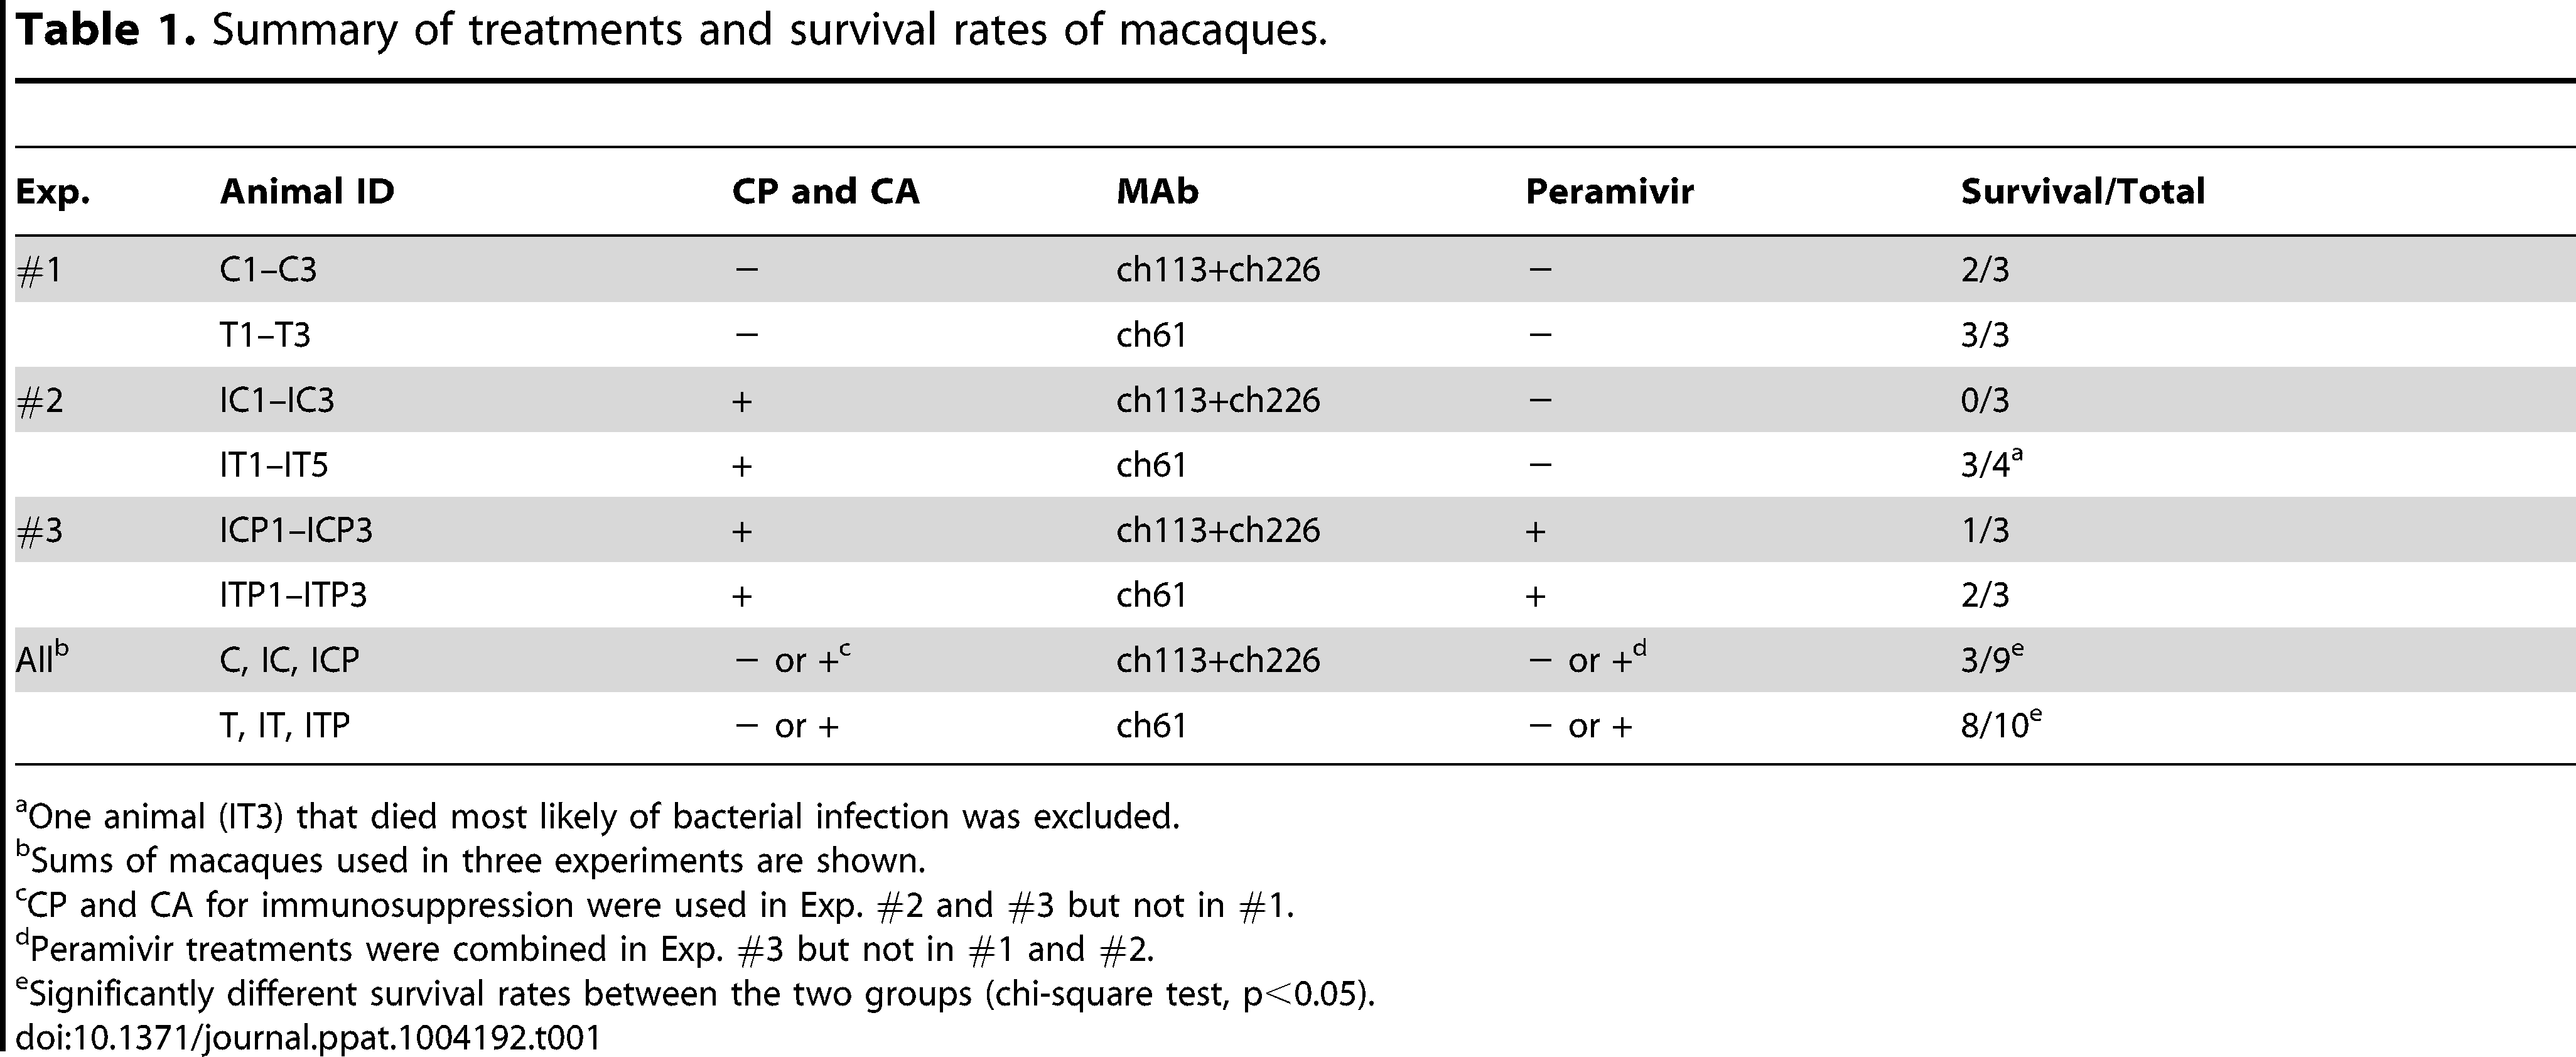 Summary of treatments and survival rates of macaques.